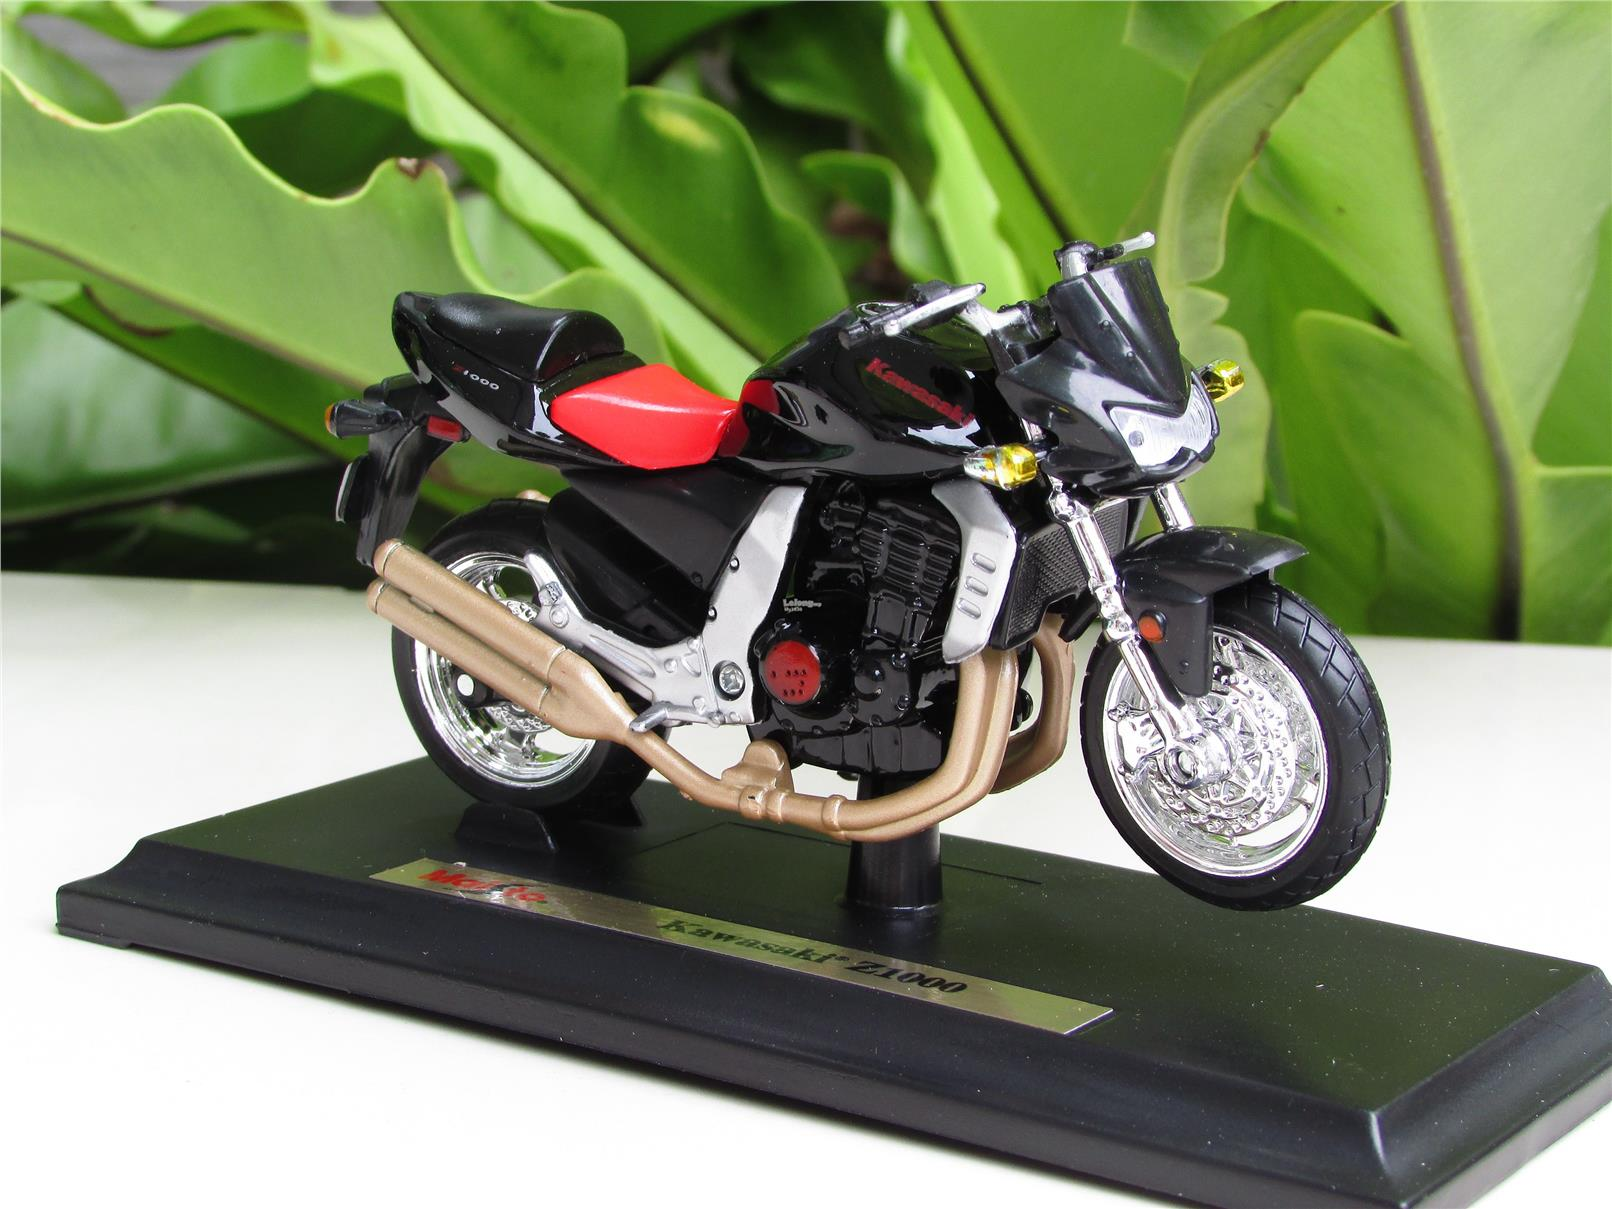 Maisto 1 18 Diecast Motorcycle Kawas End 7 29 2019 5 41 Pm